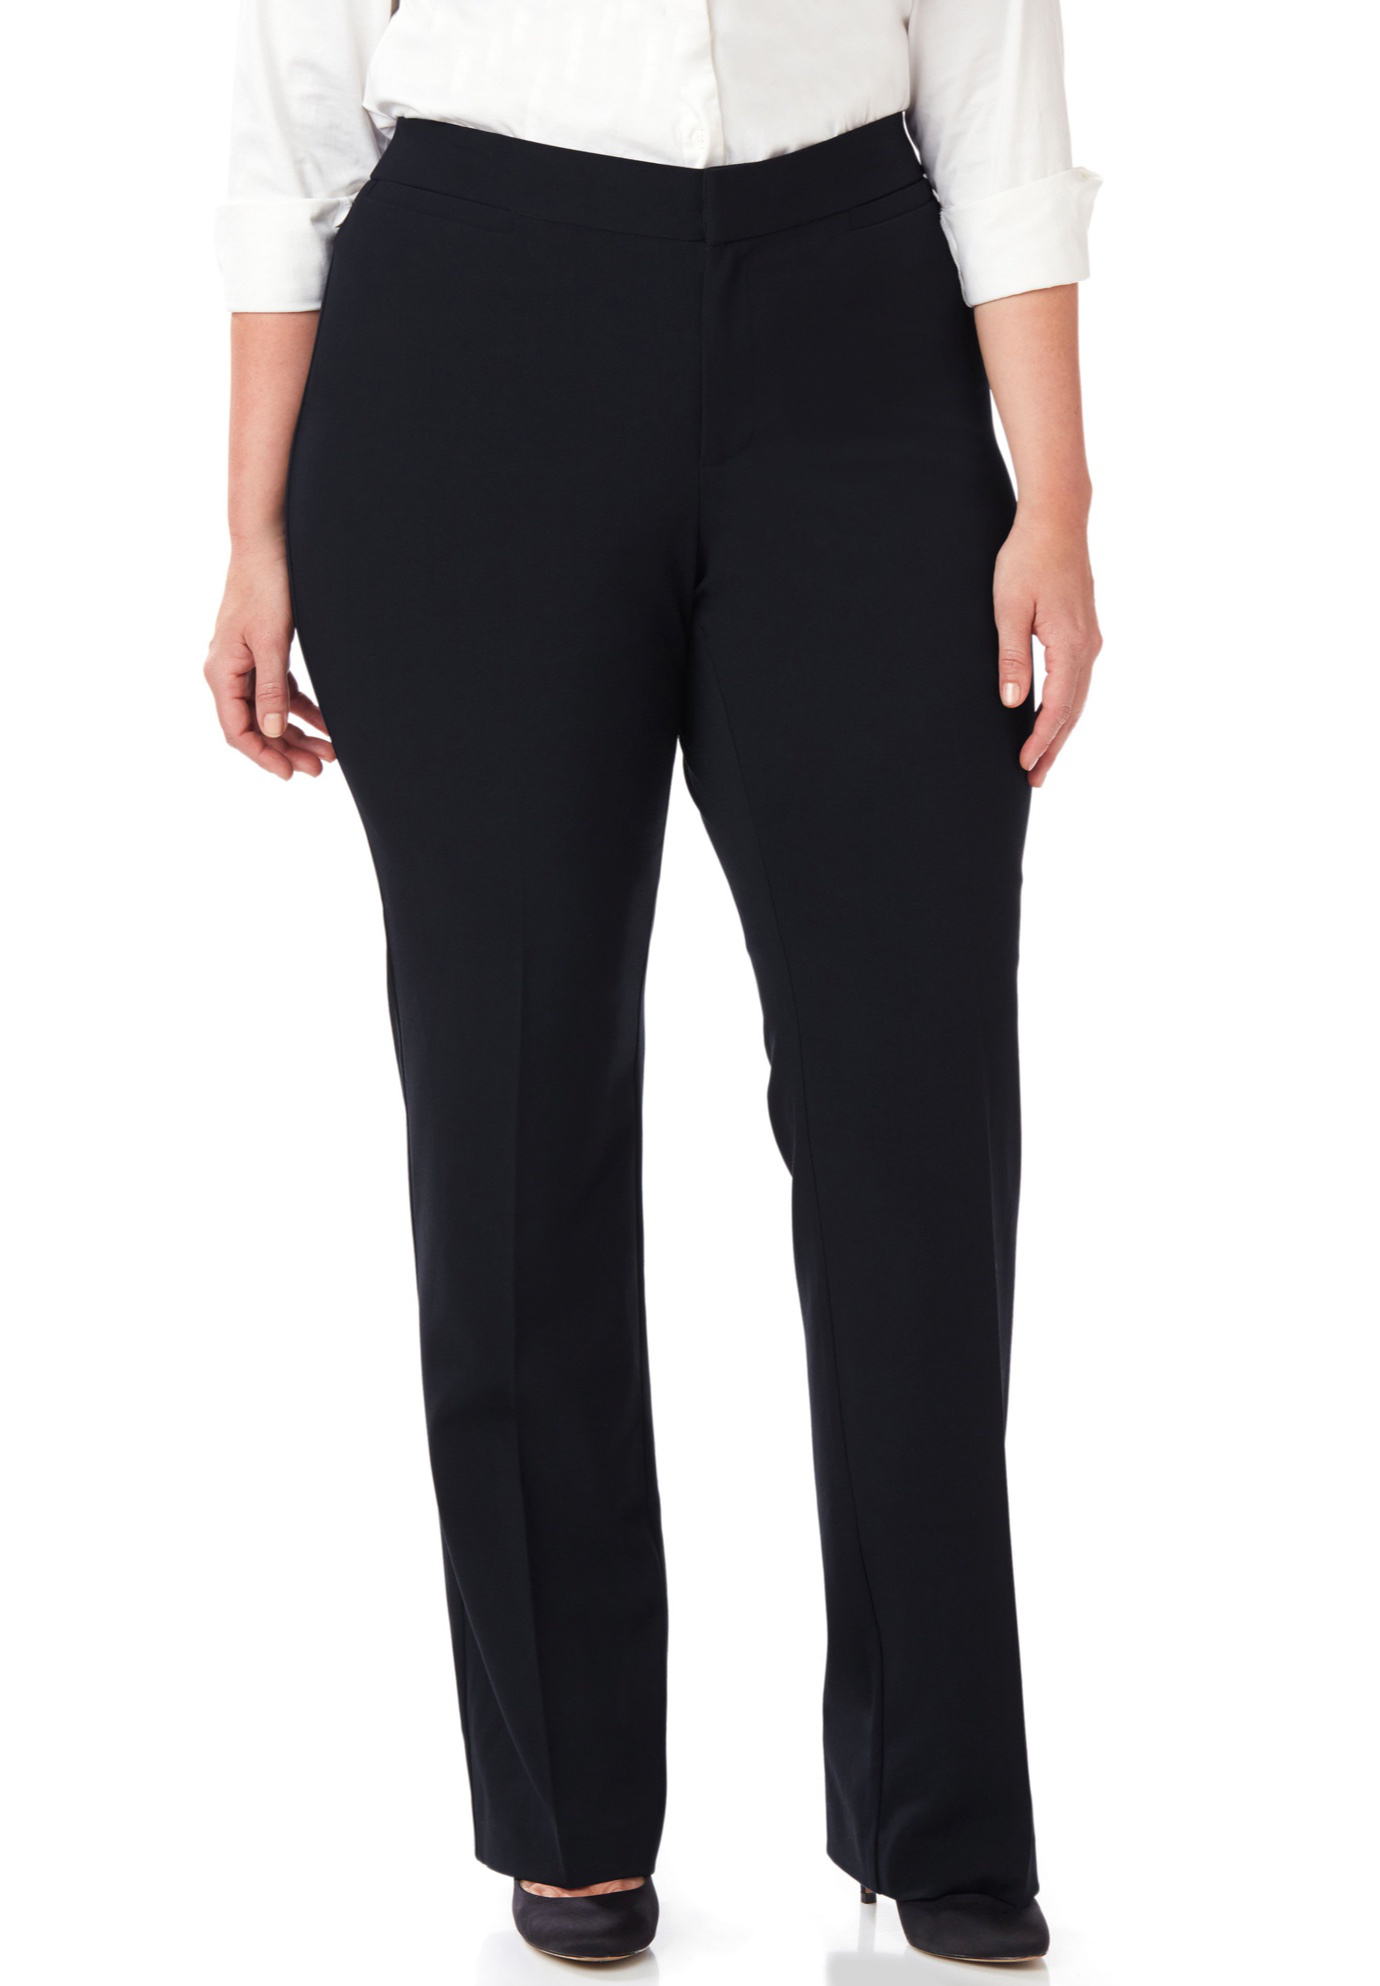 Right Fit Pant (Curvy),